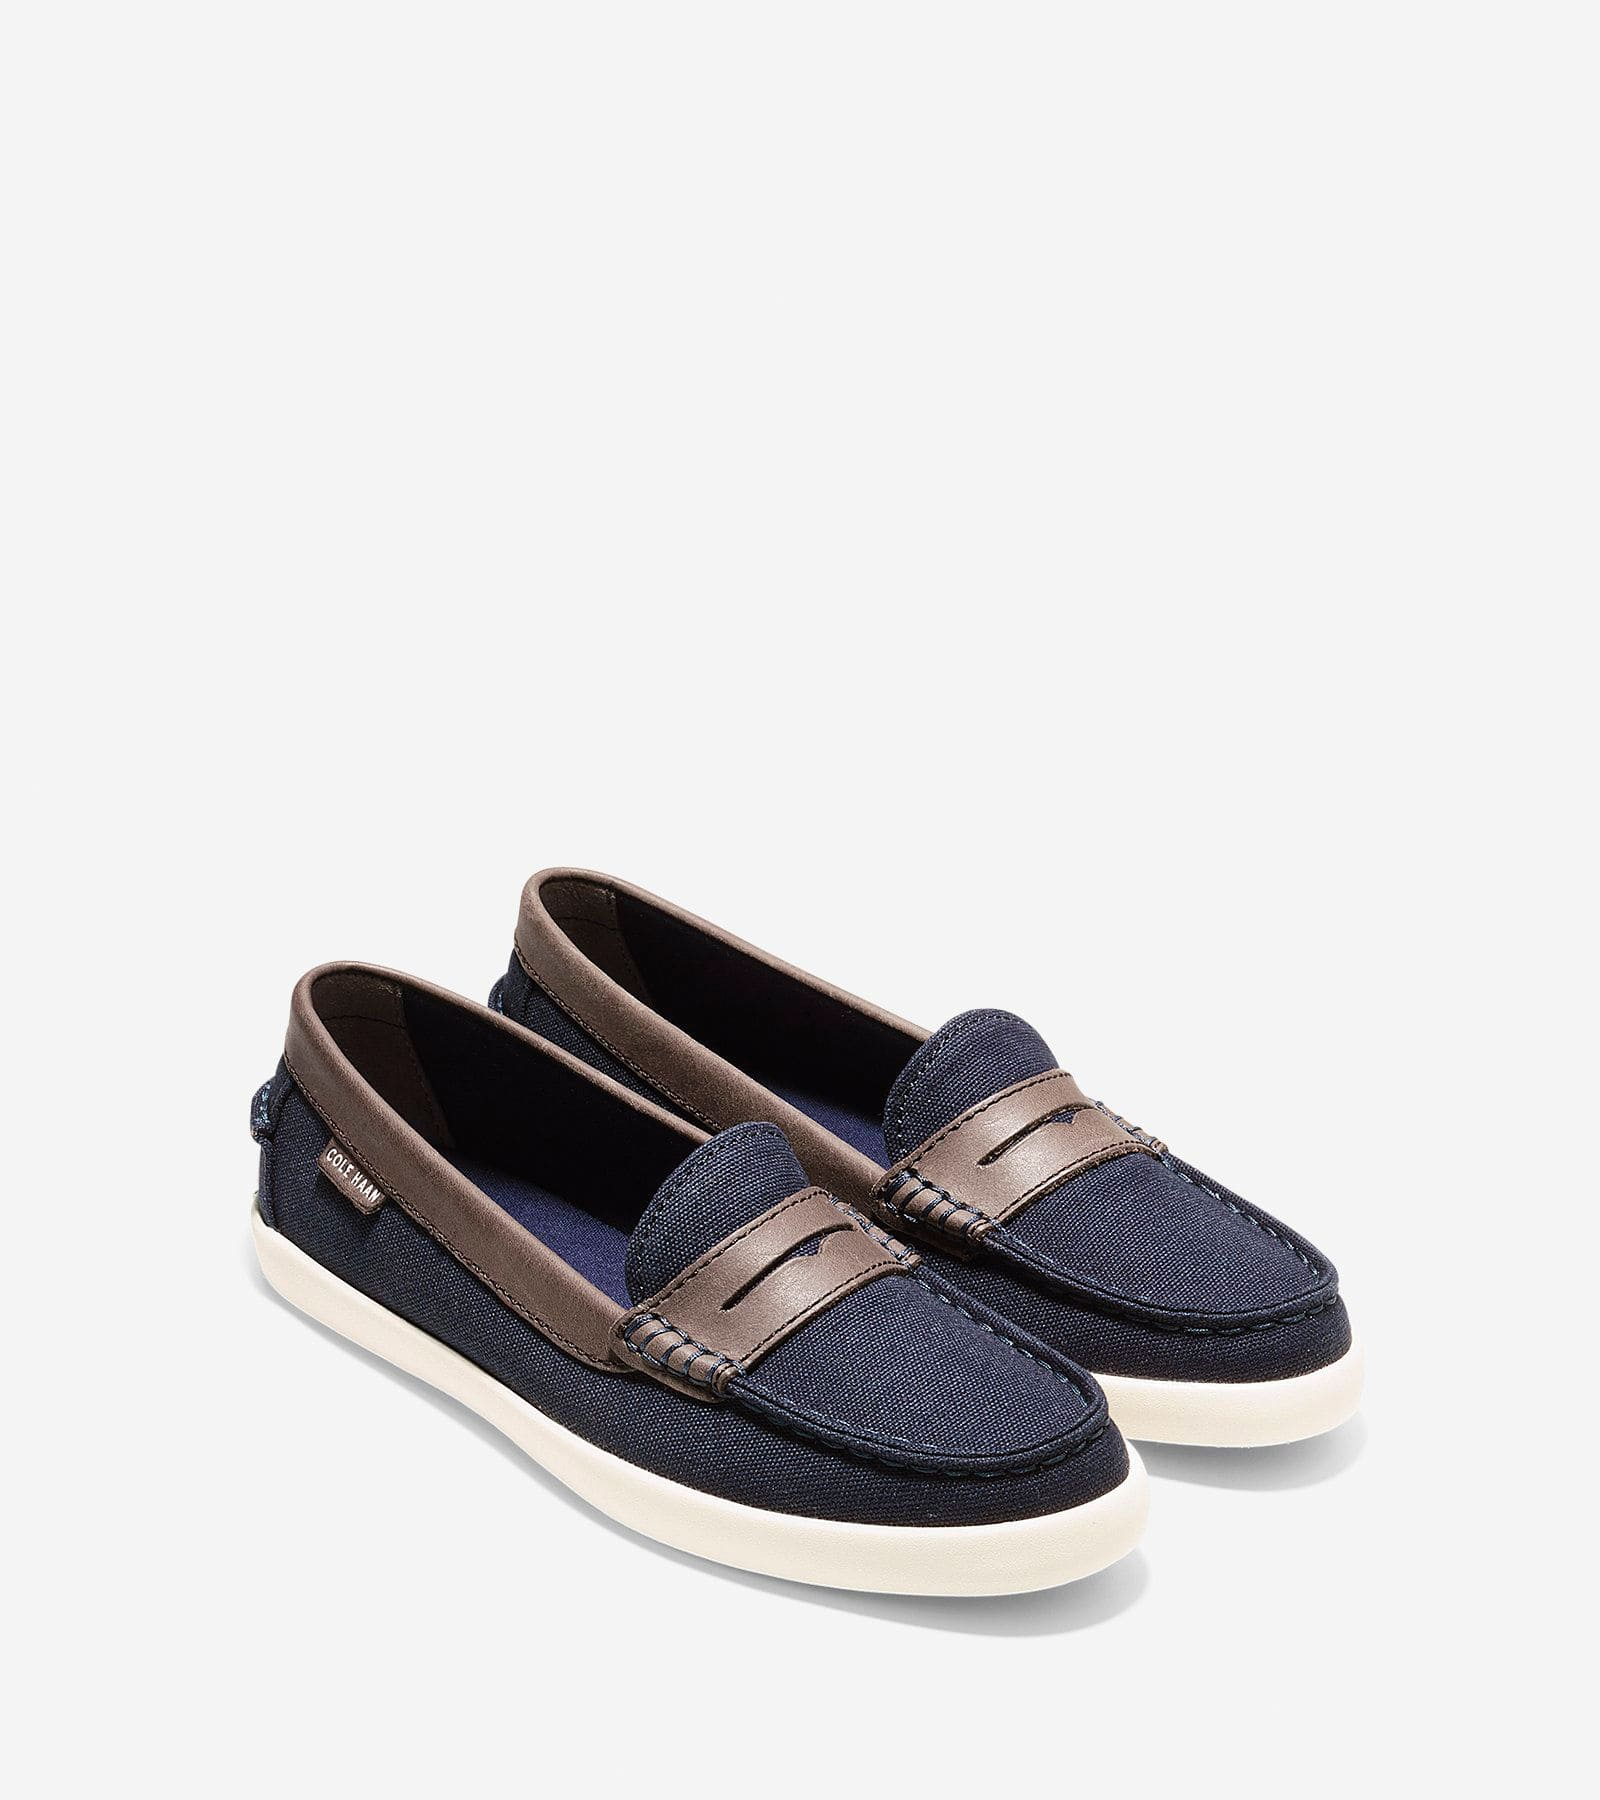 Cole Haan $35 Women's Nantucket Loafer - Extra 30% off total purchase + Free 2 day ship with ShopRunner